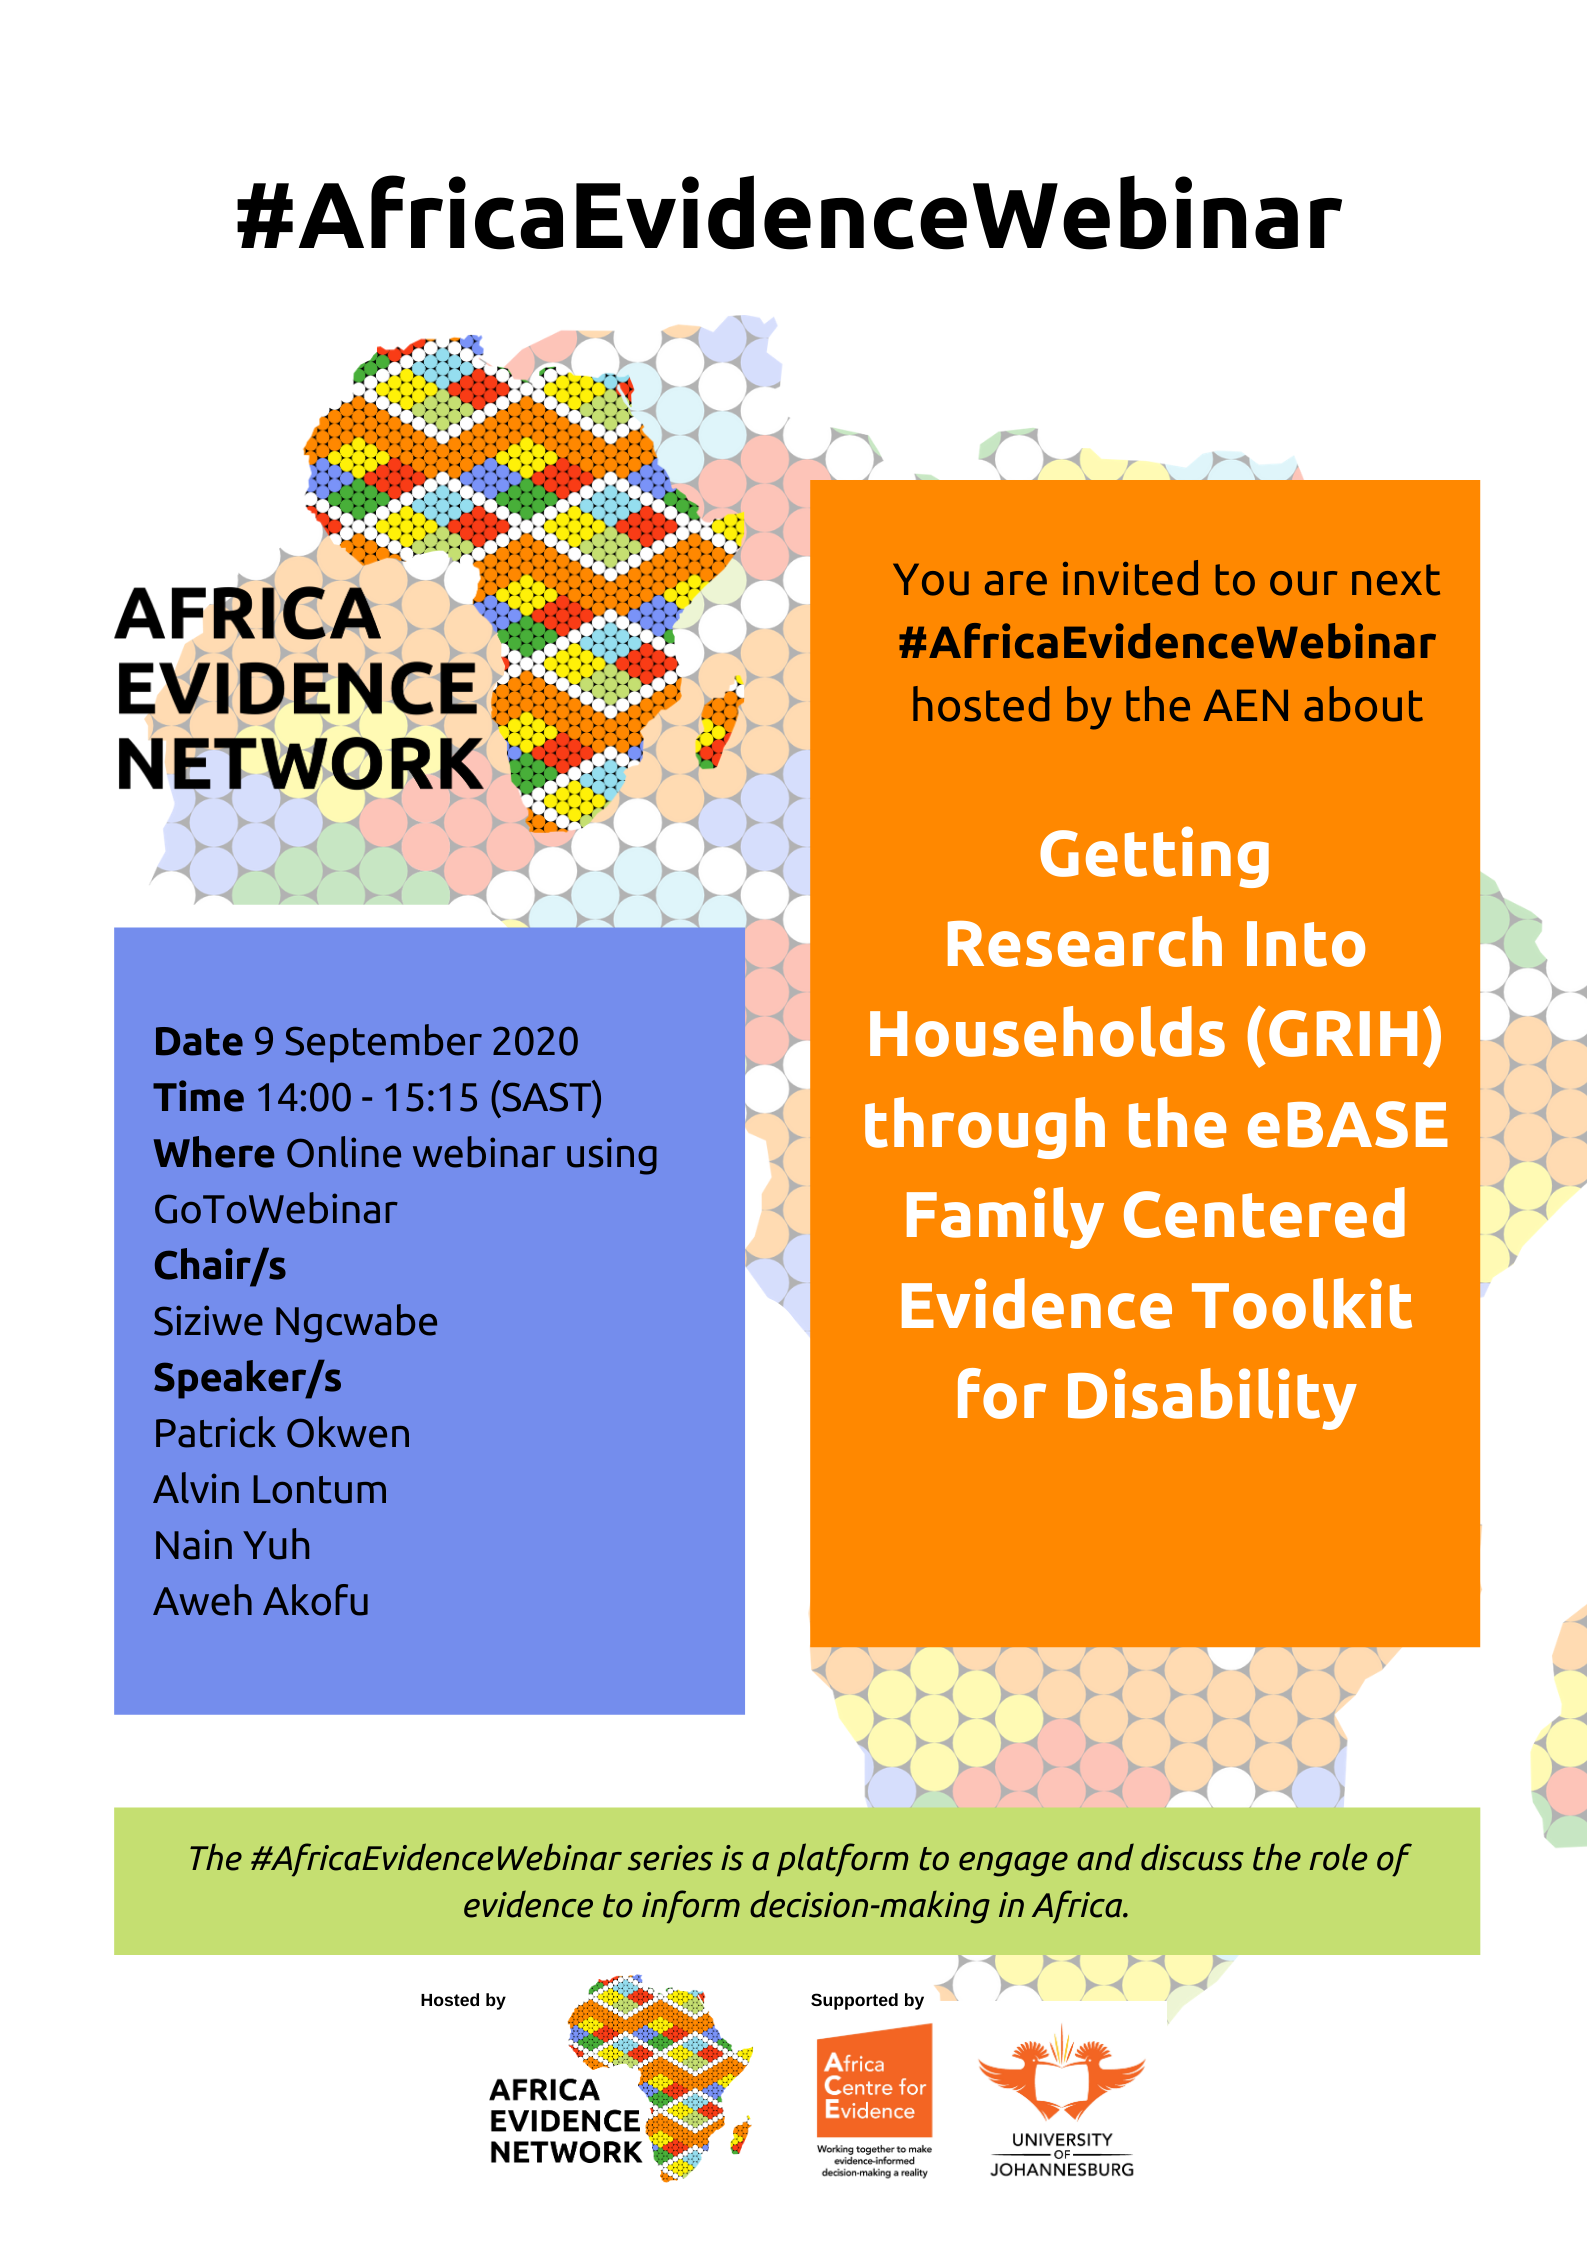 #AfricaEvidenceWebinar | Getting research into households (GRIH) through the eBASE family-centred evidence toolkit for disability